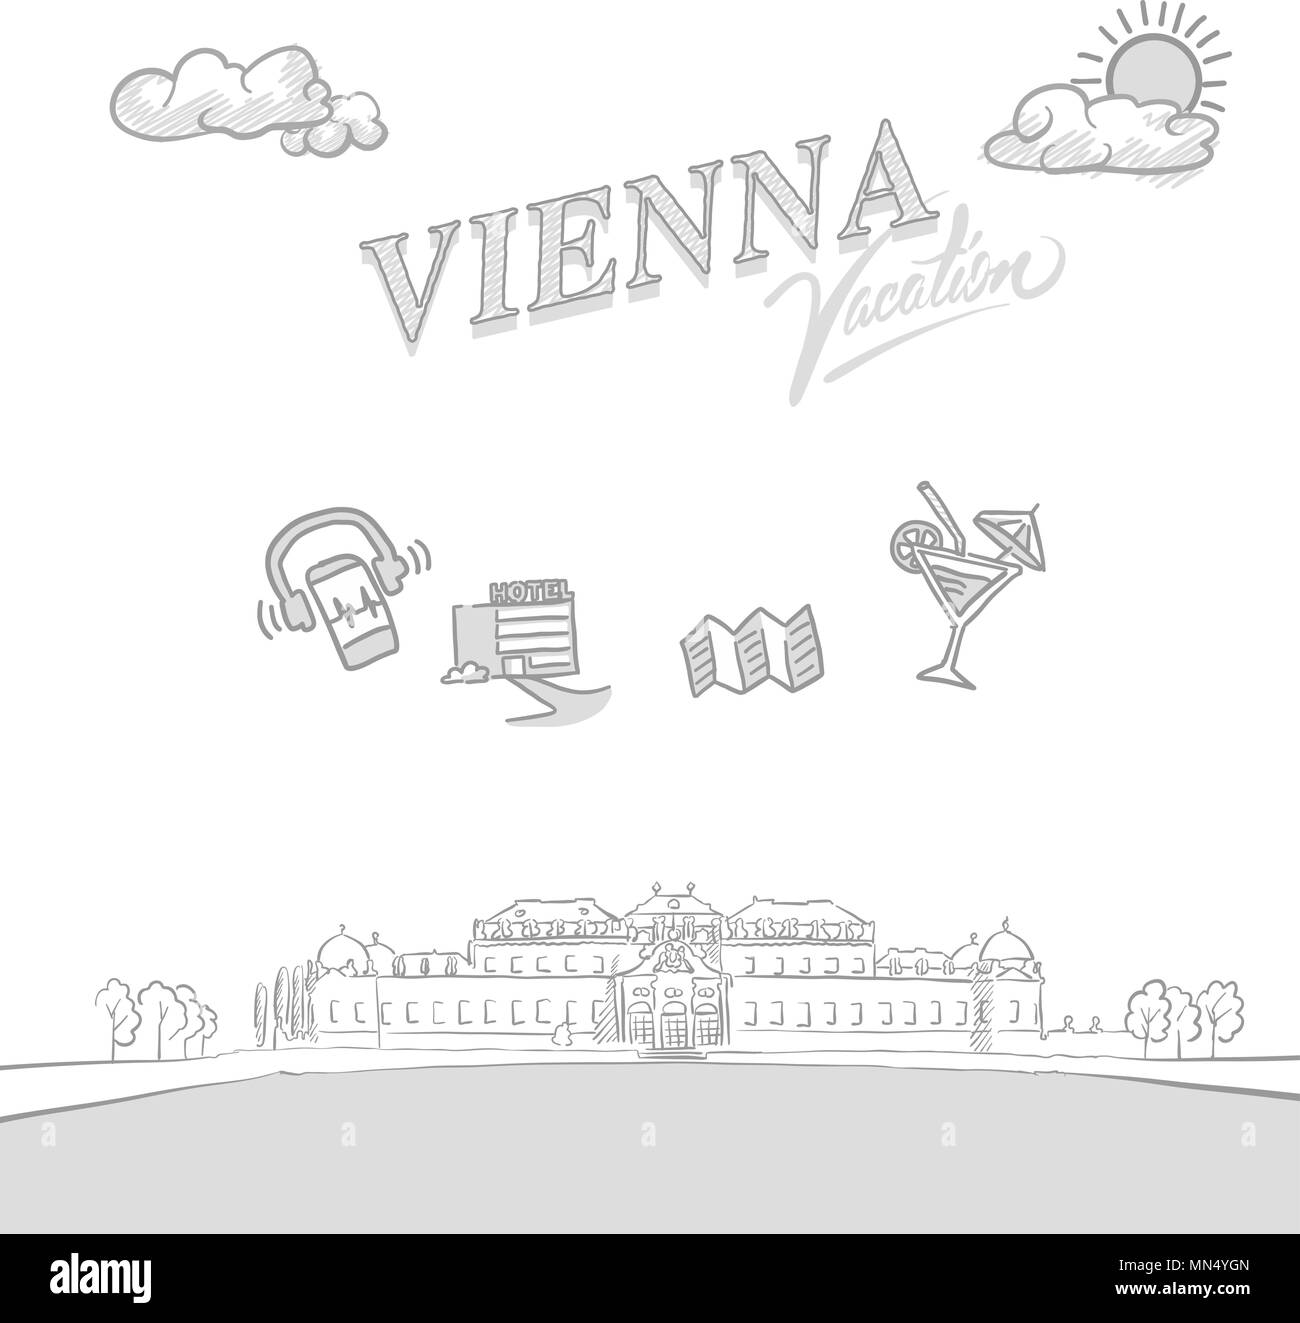 Vienna travel marketing cover, set of hand drawn a vector sketches - Stock Image